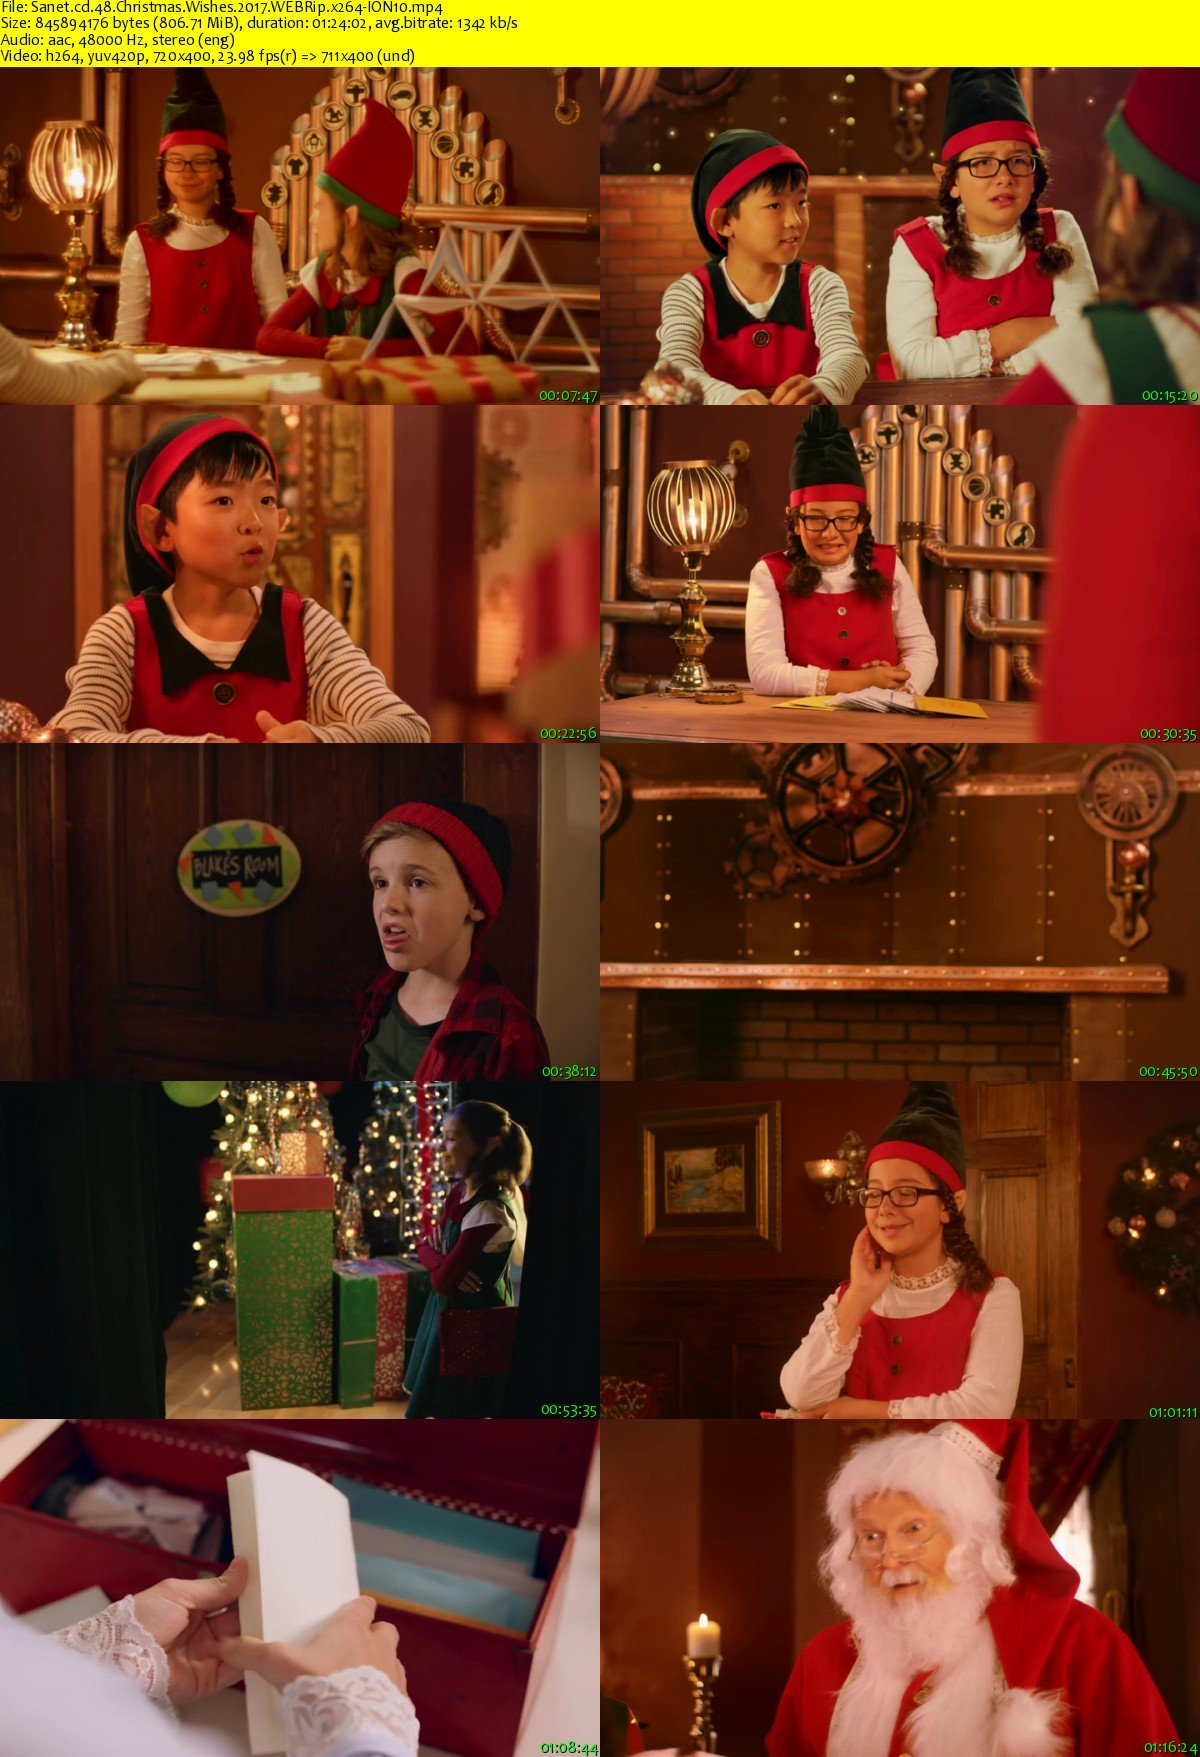 48 Christmas Wishes.Download 48 Christmas Wishes 2017 Webrip X264 Ion10